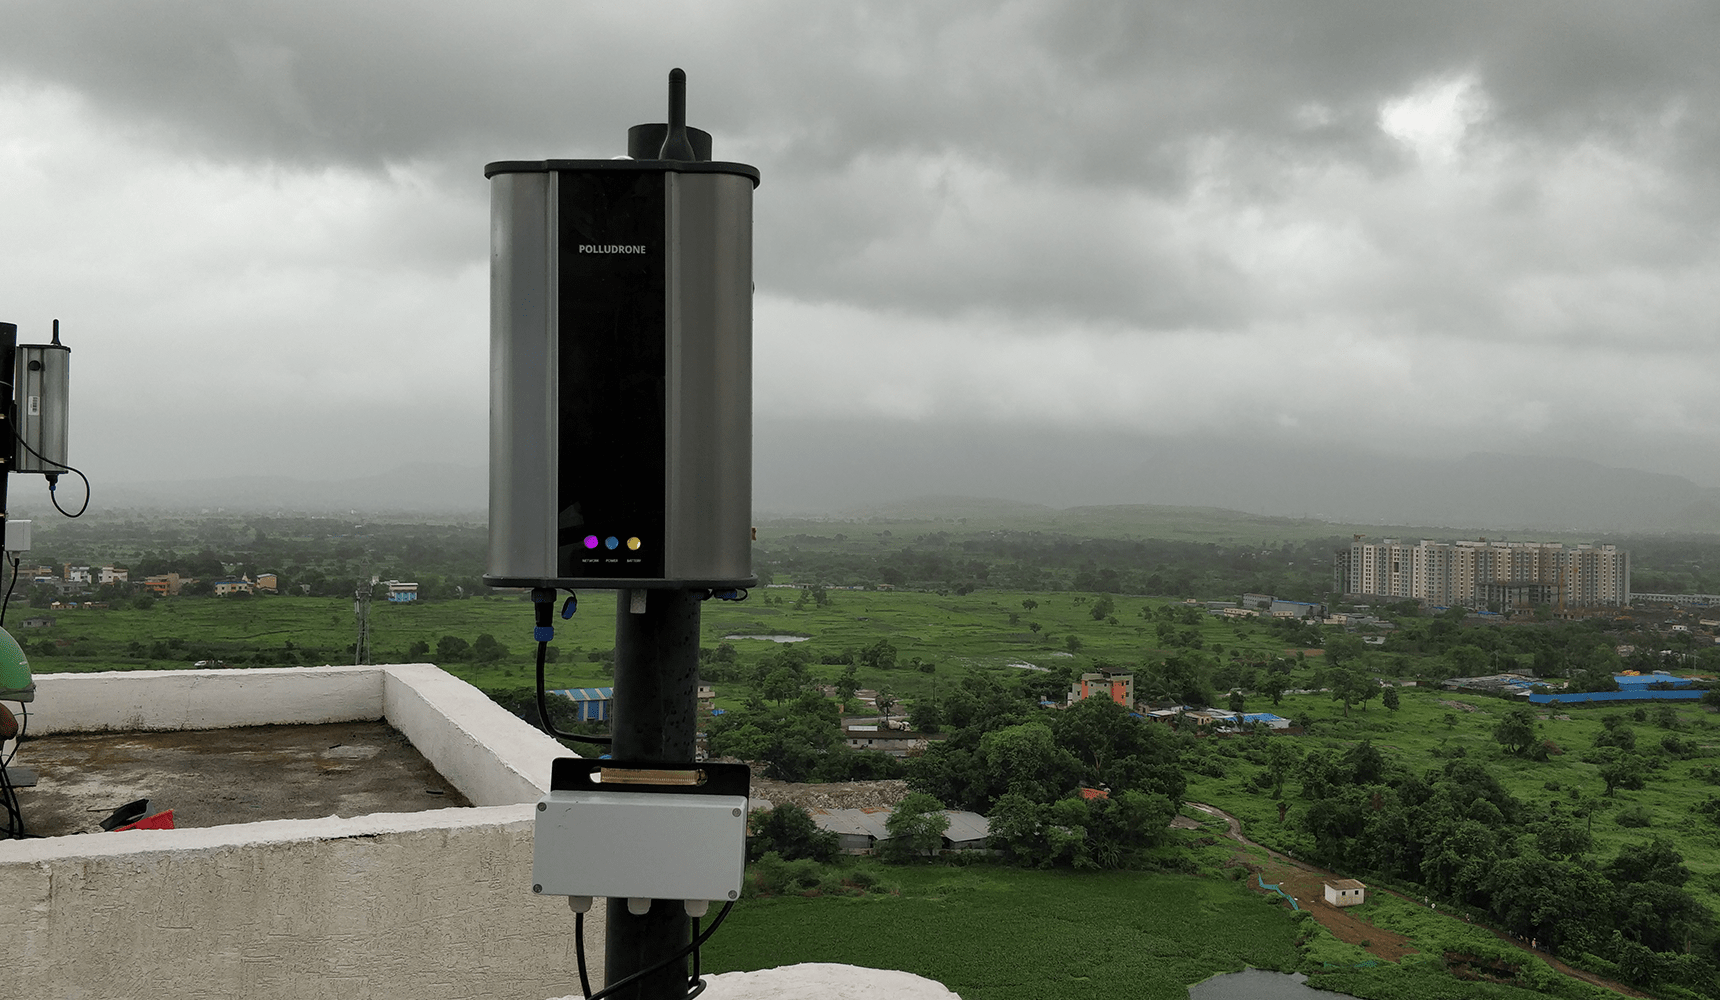 Oizom Air Monitoring System - Polludrone measures outdoor air quality along with its inbuilt Automatic Weather Station.